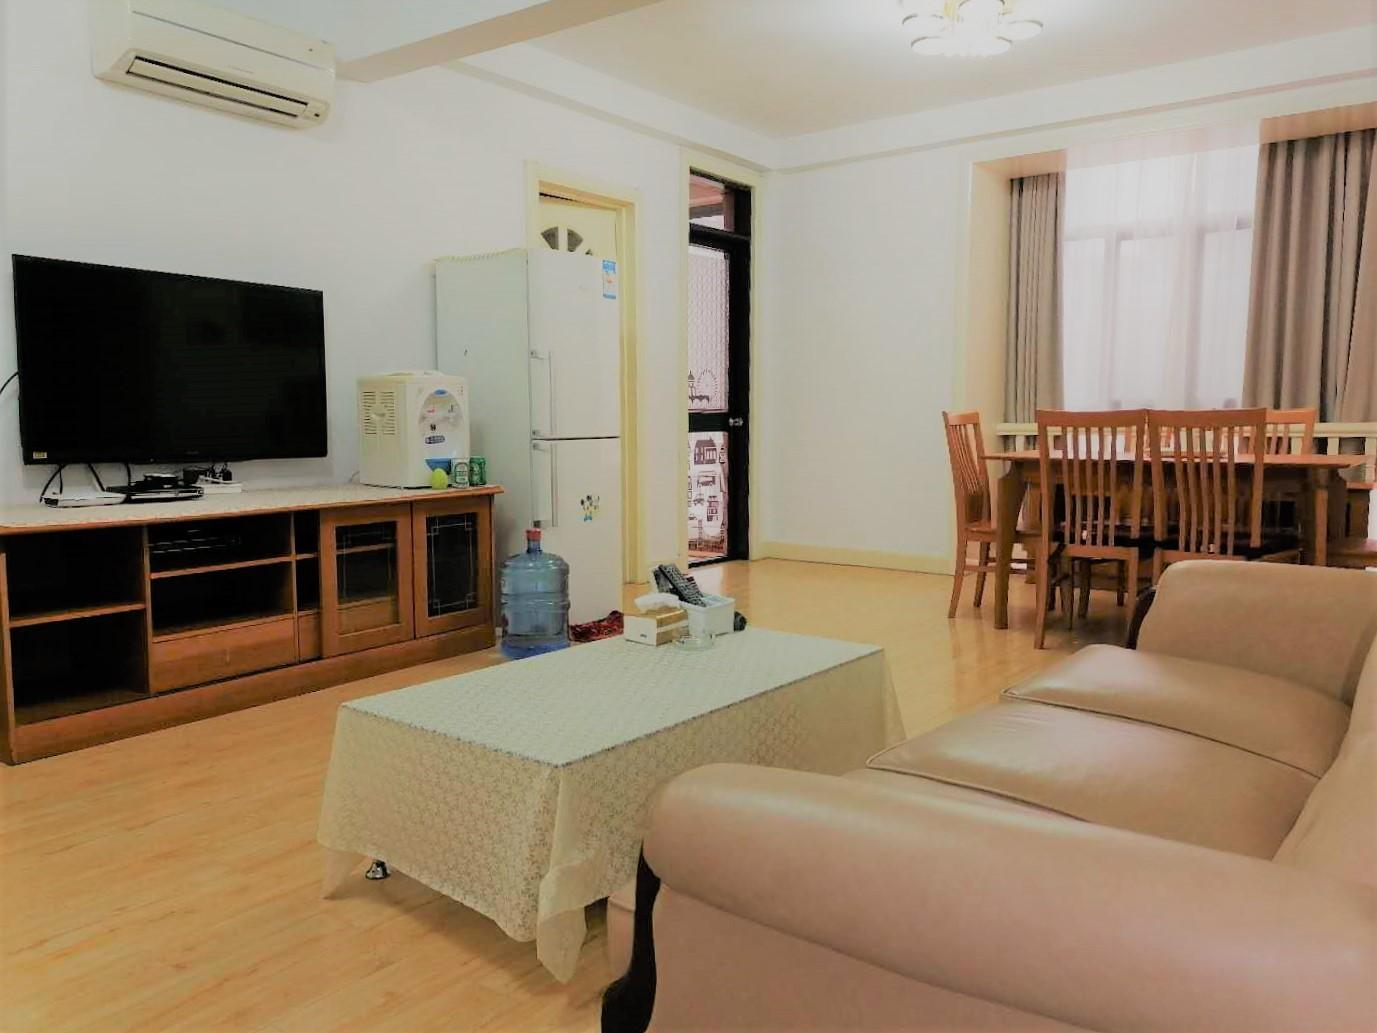 Max 3 guests, good location from hongqiao airport